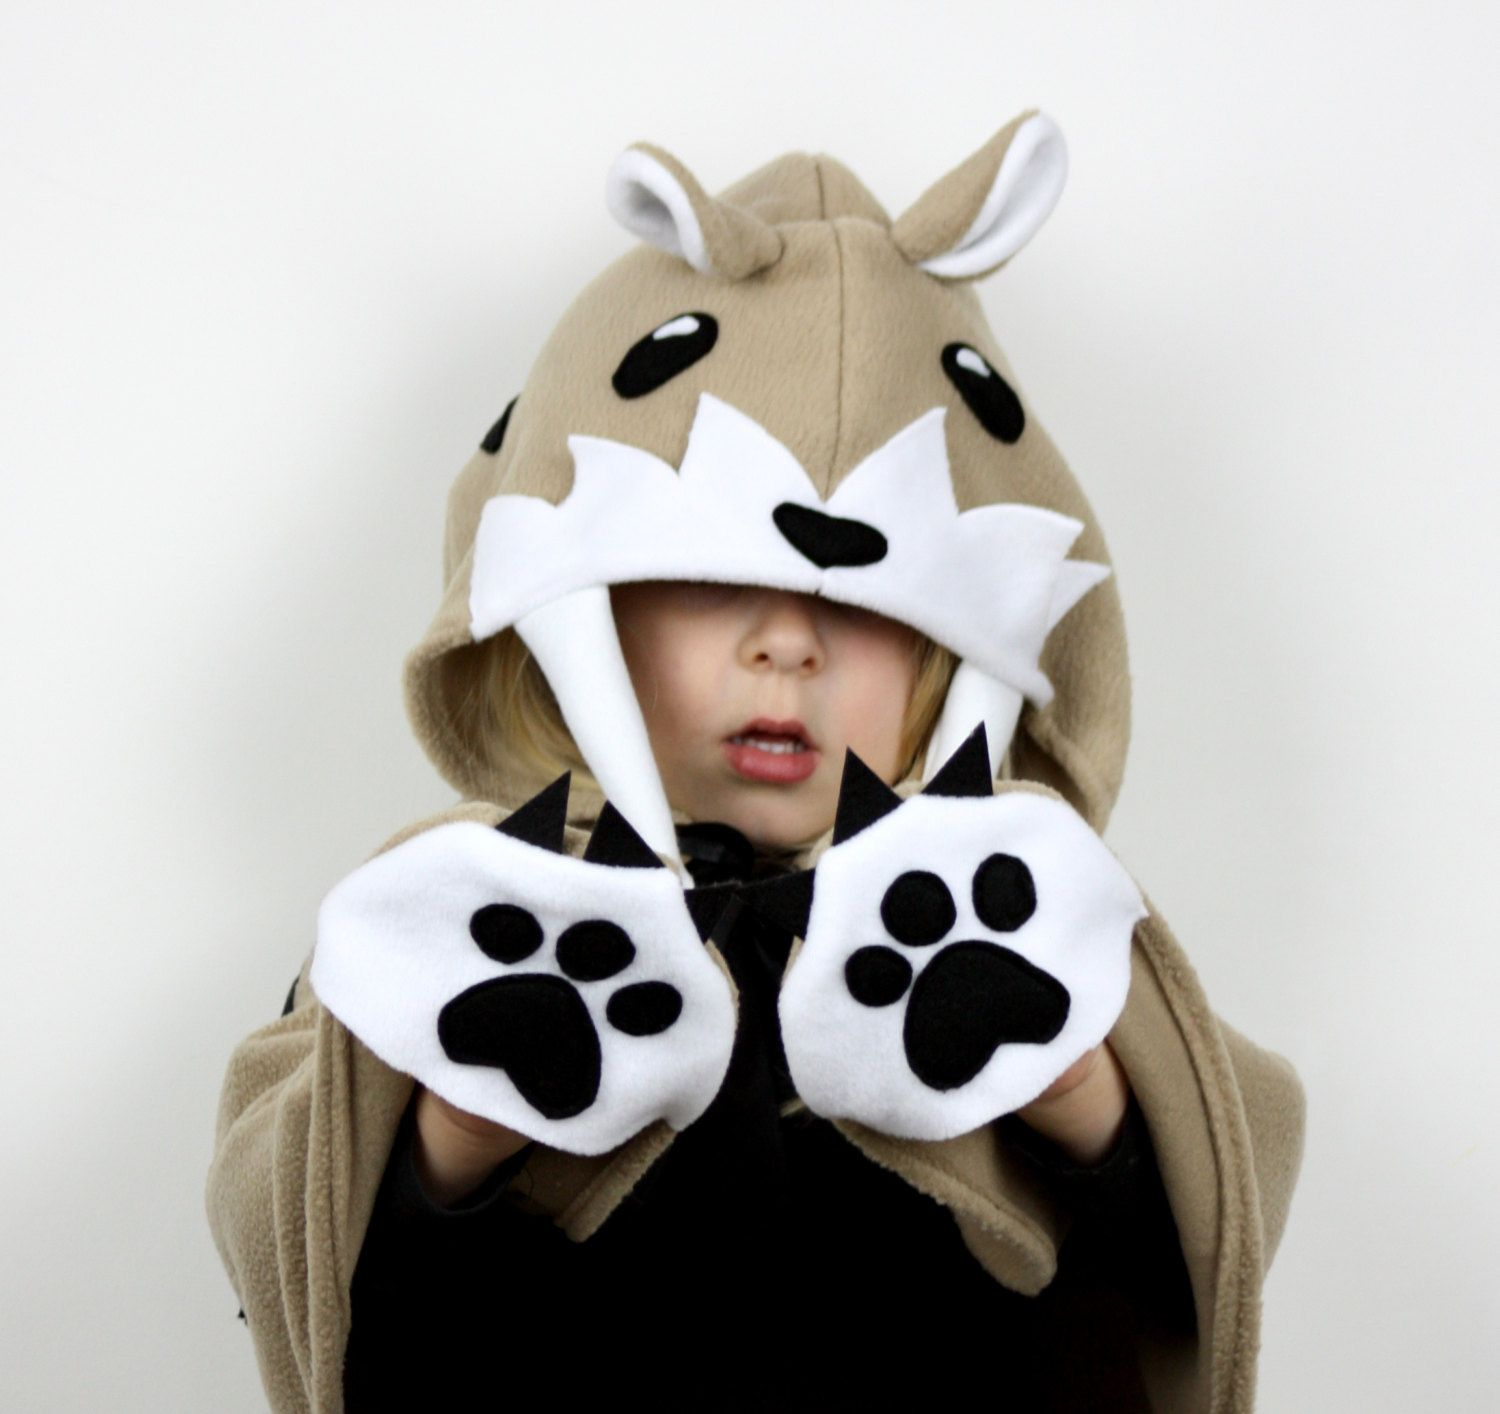 Saber Tooth Tiger Kids Costume - Childrens halloween fancy dress up by sparrowandbcostumery on Etsy   sc 1 st  Pinterest & Saber Tooth Tiger Kids Costume - Childrens halloween fancy dress up ...